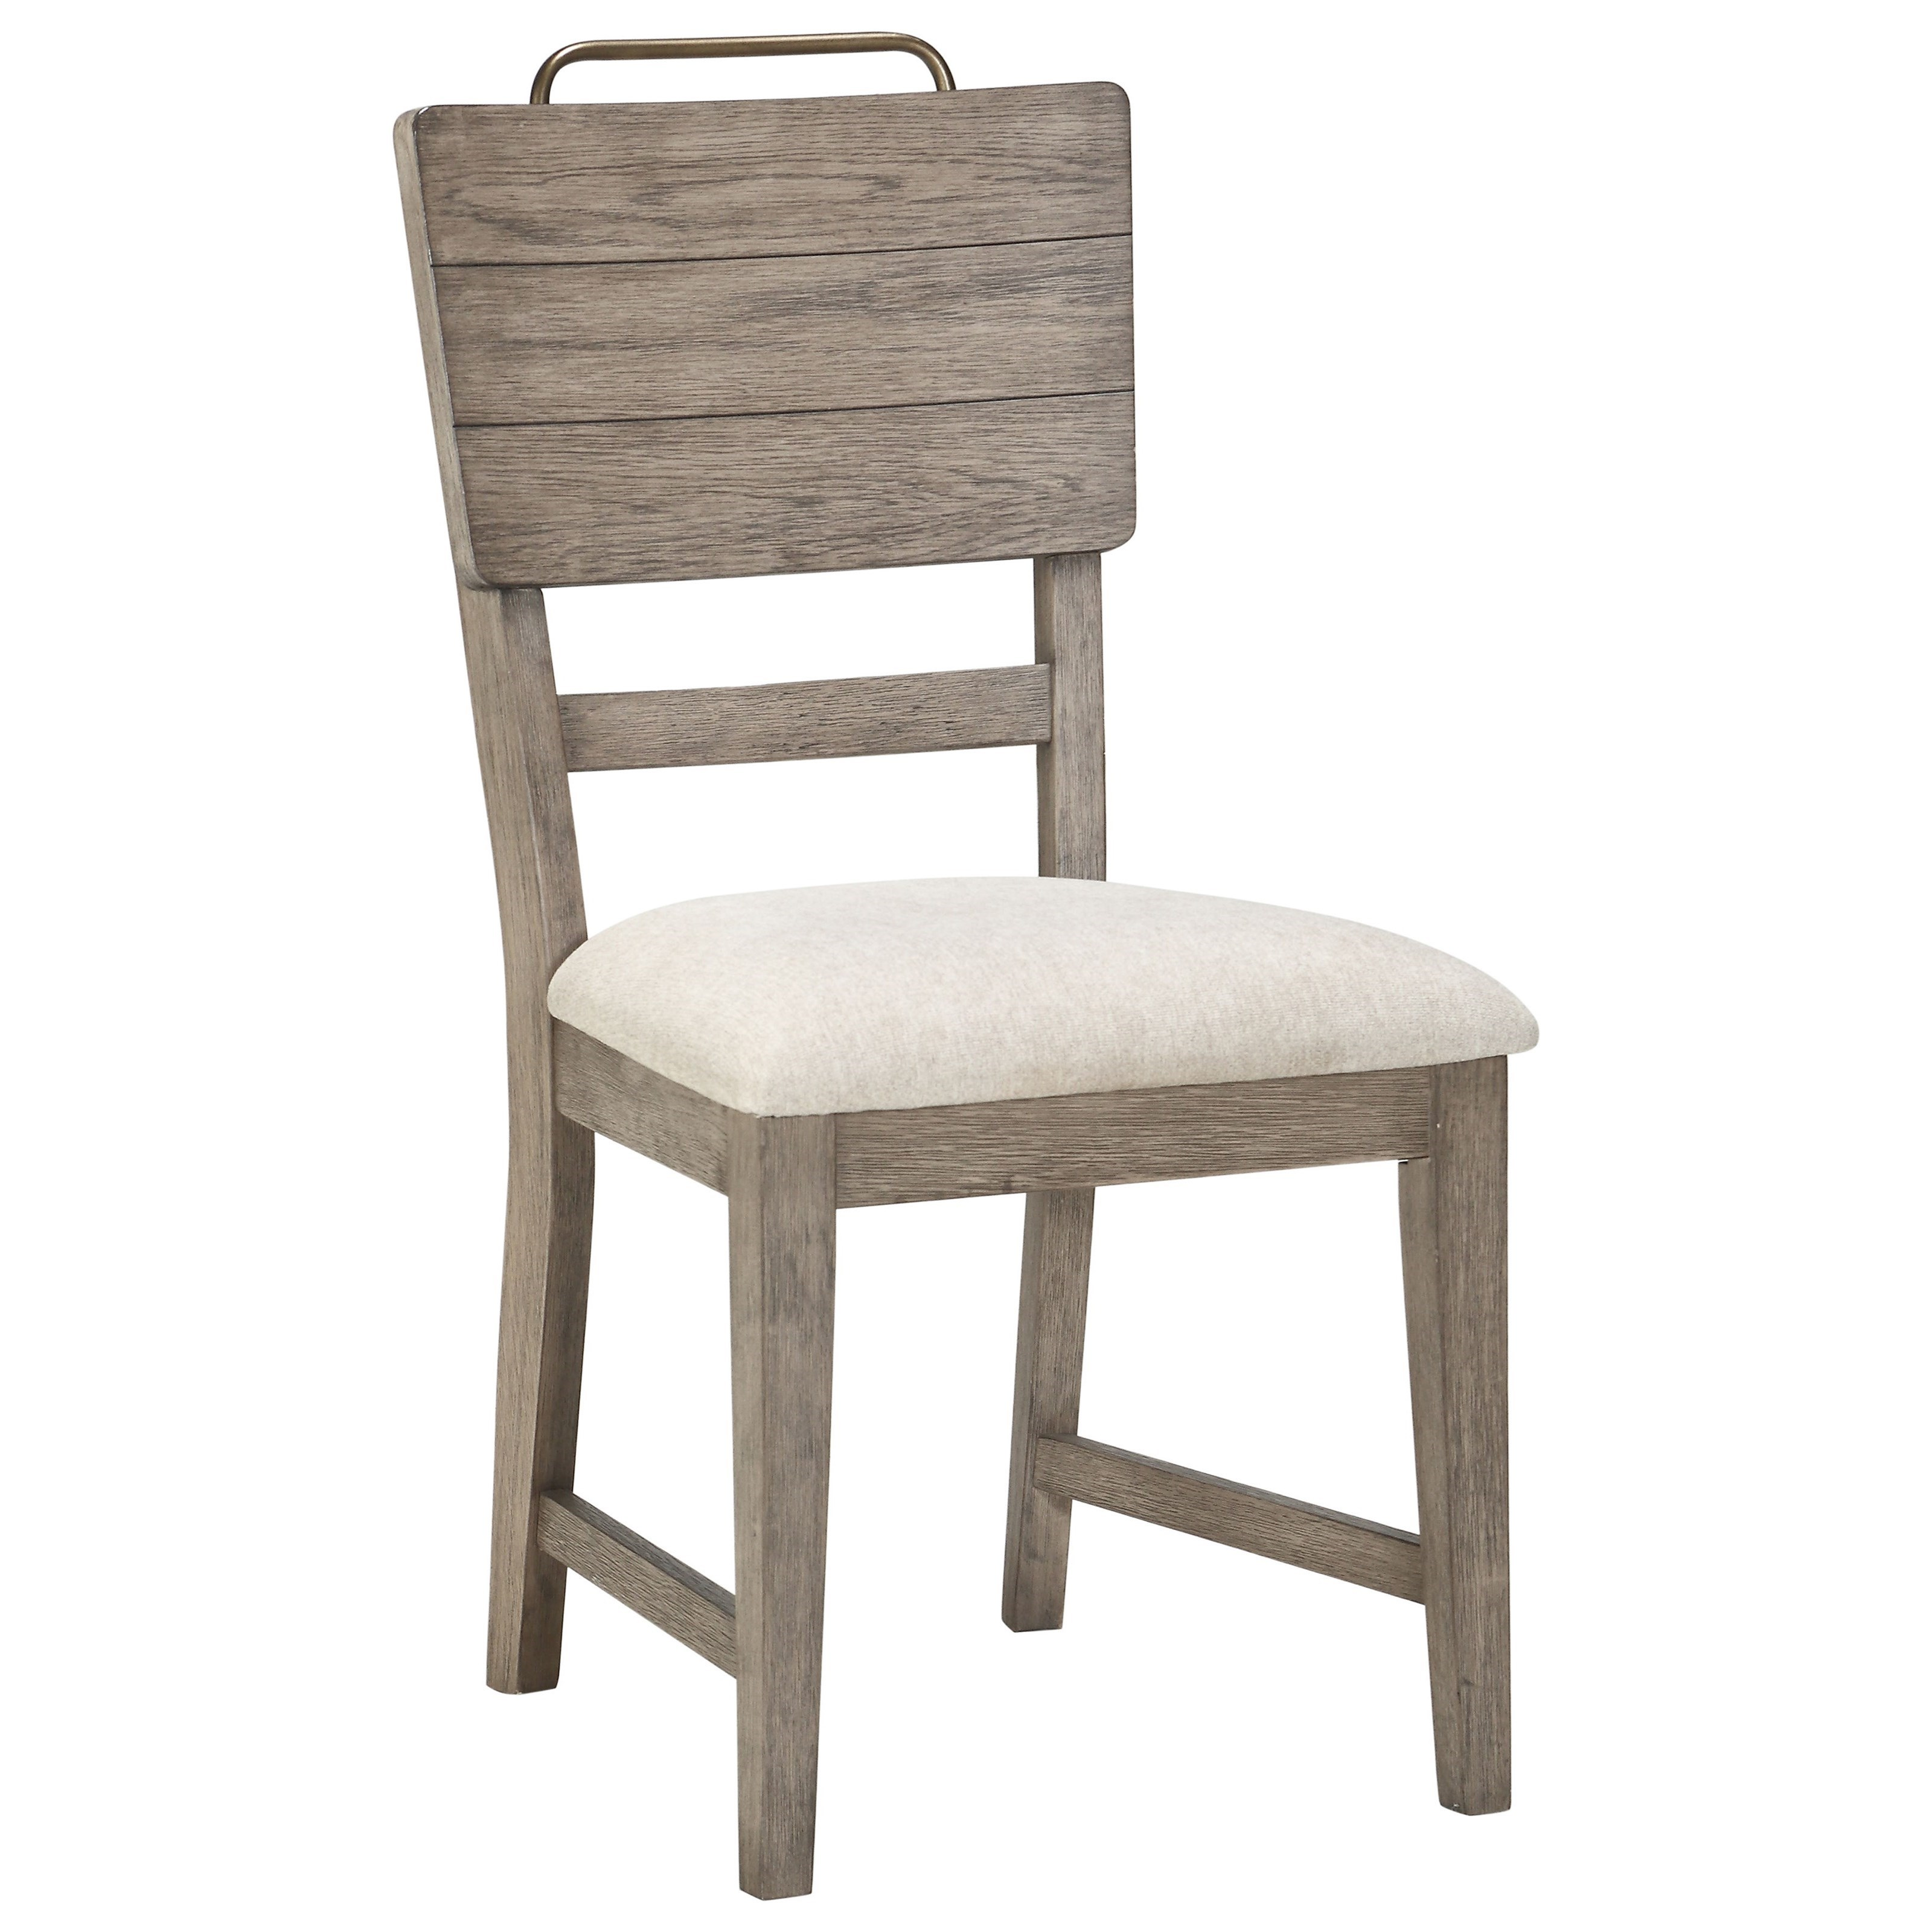 Steve Silver Ryan Rr500s Transitional Side Chair With Upholstered Seat And Metal Accent Handle Northeast Factory Direct Dining Side Chairs